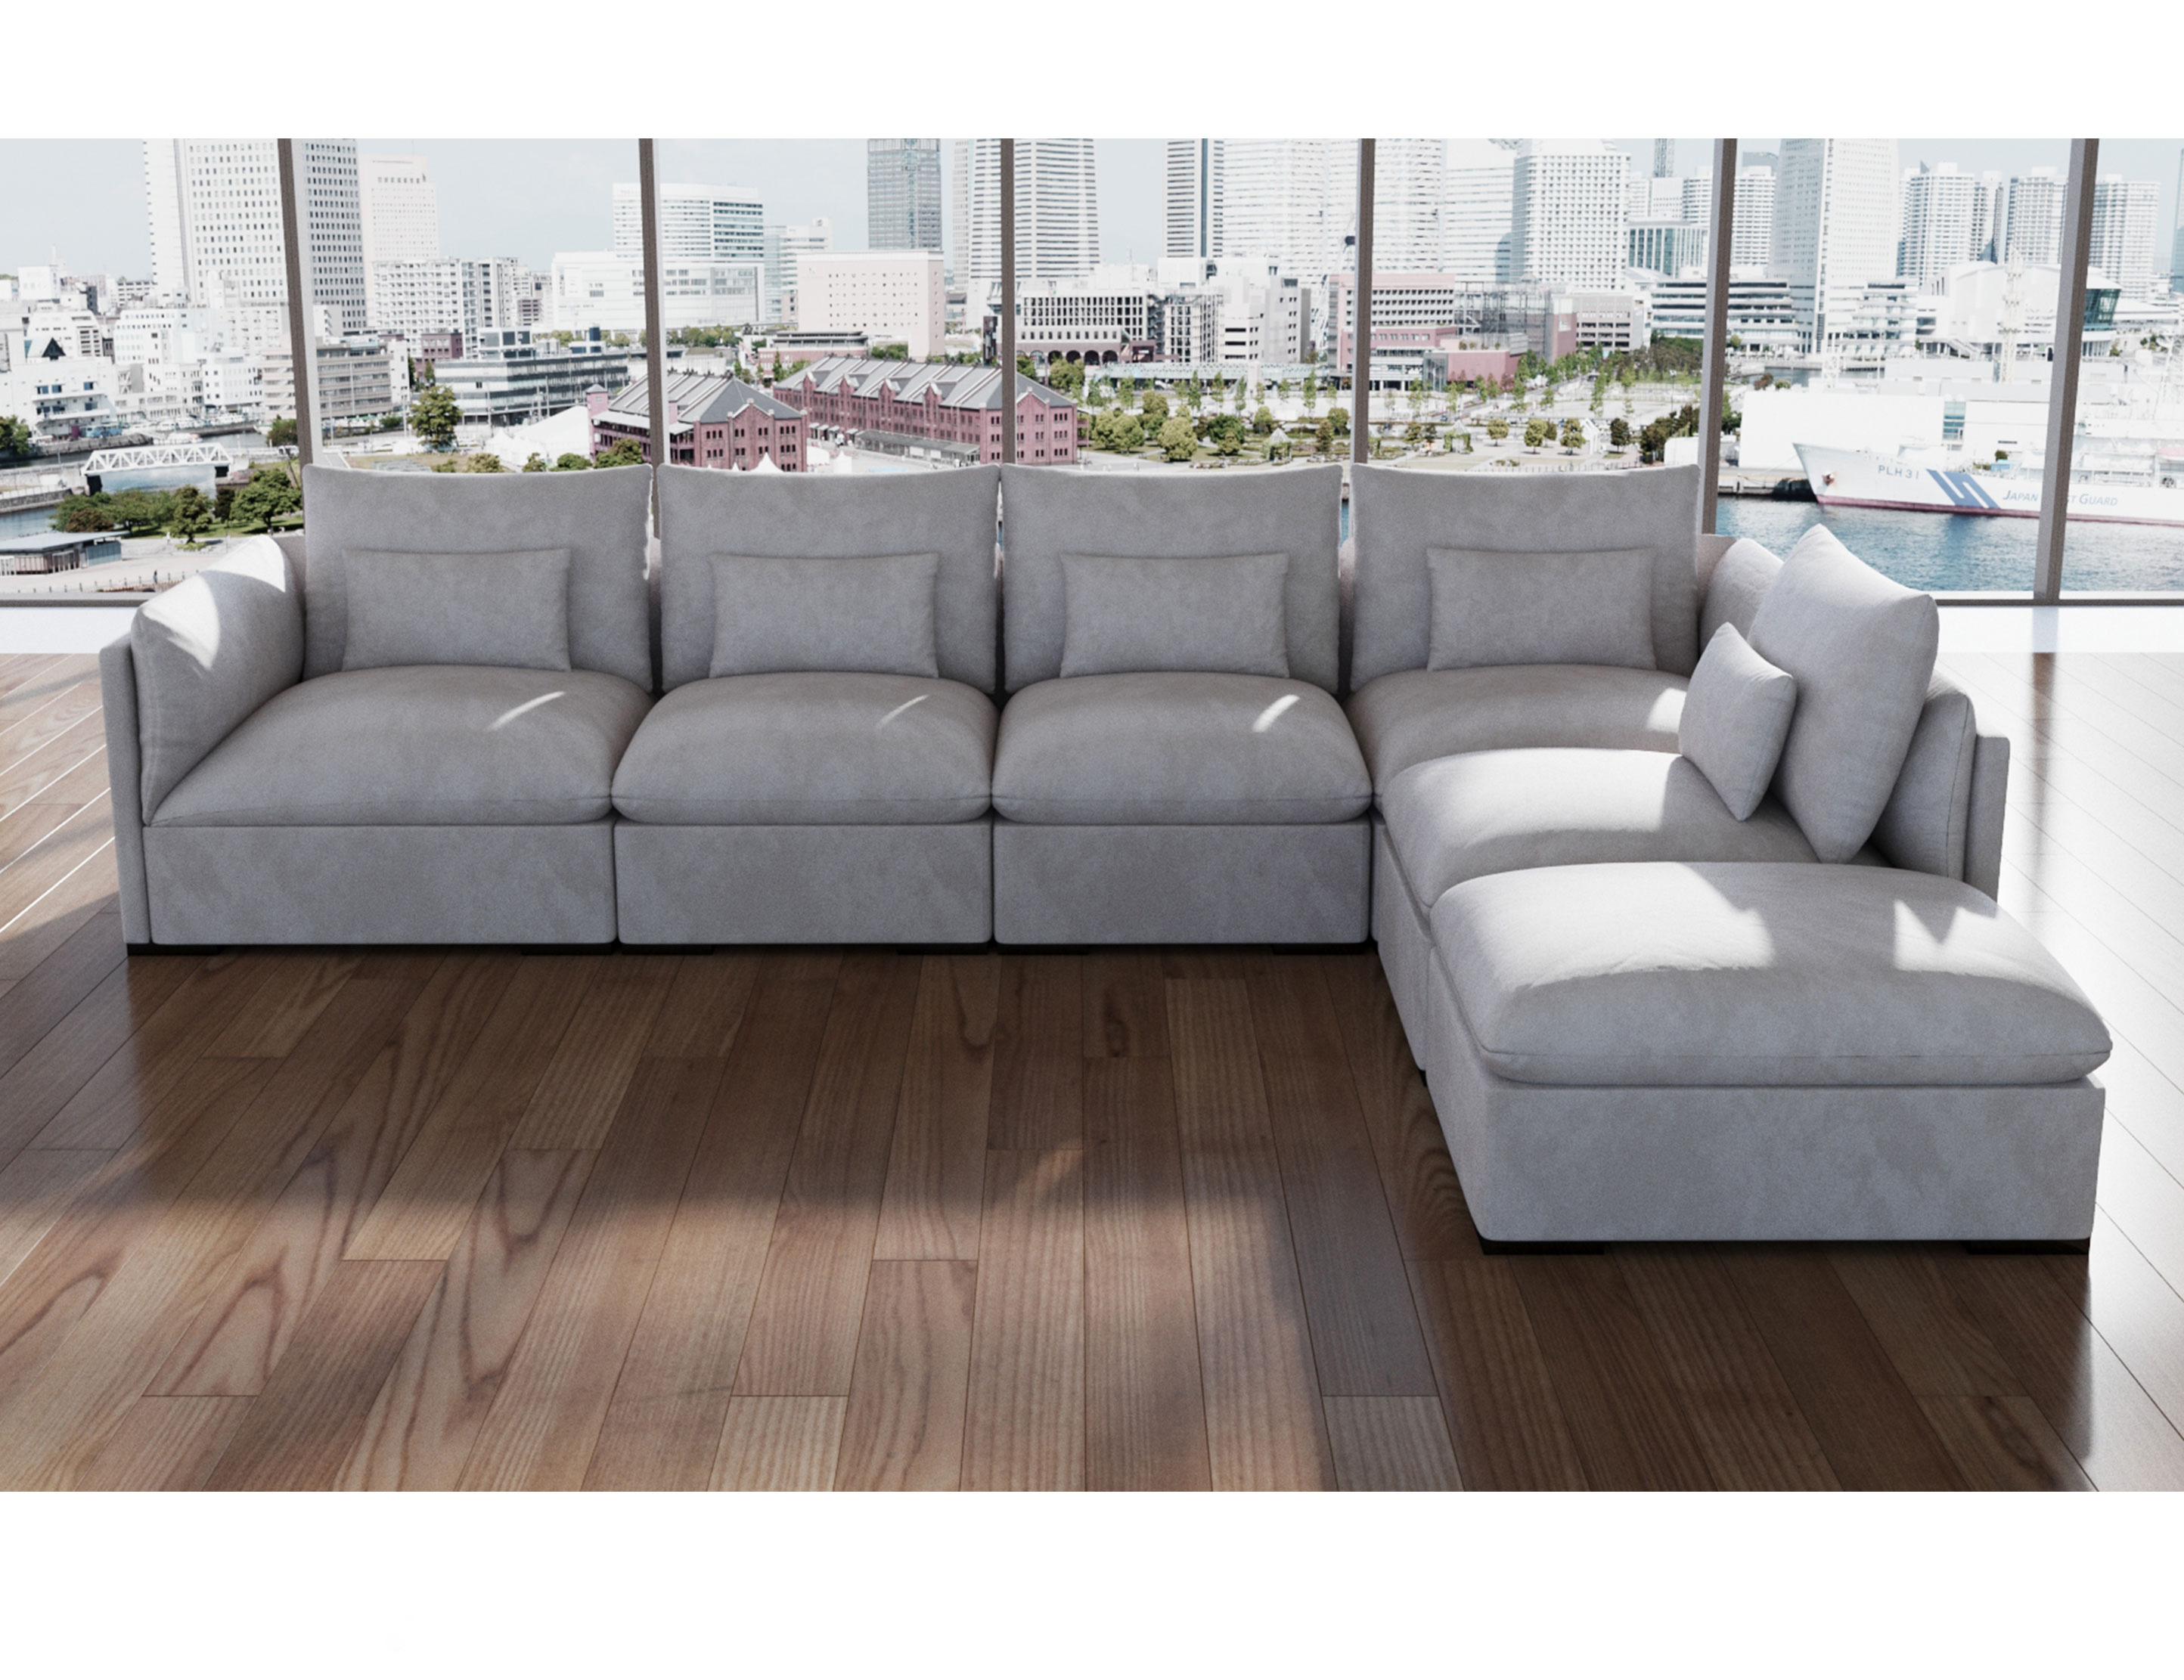 Adagio Luxury Sectional Modular Sofa